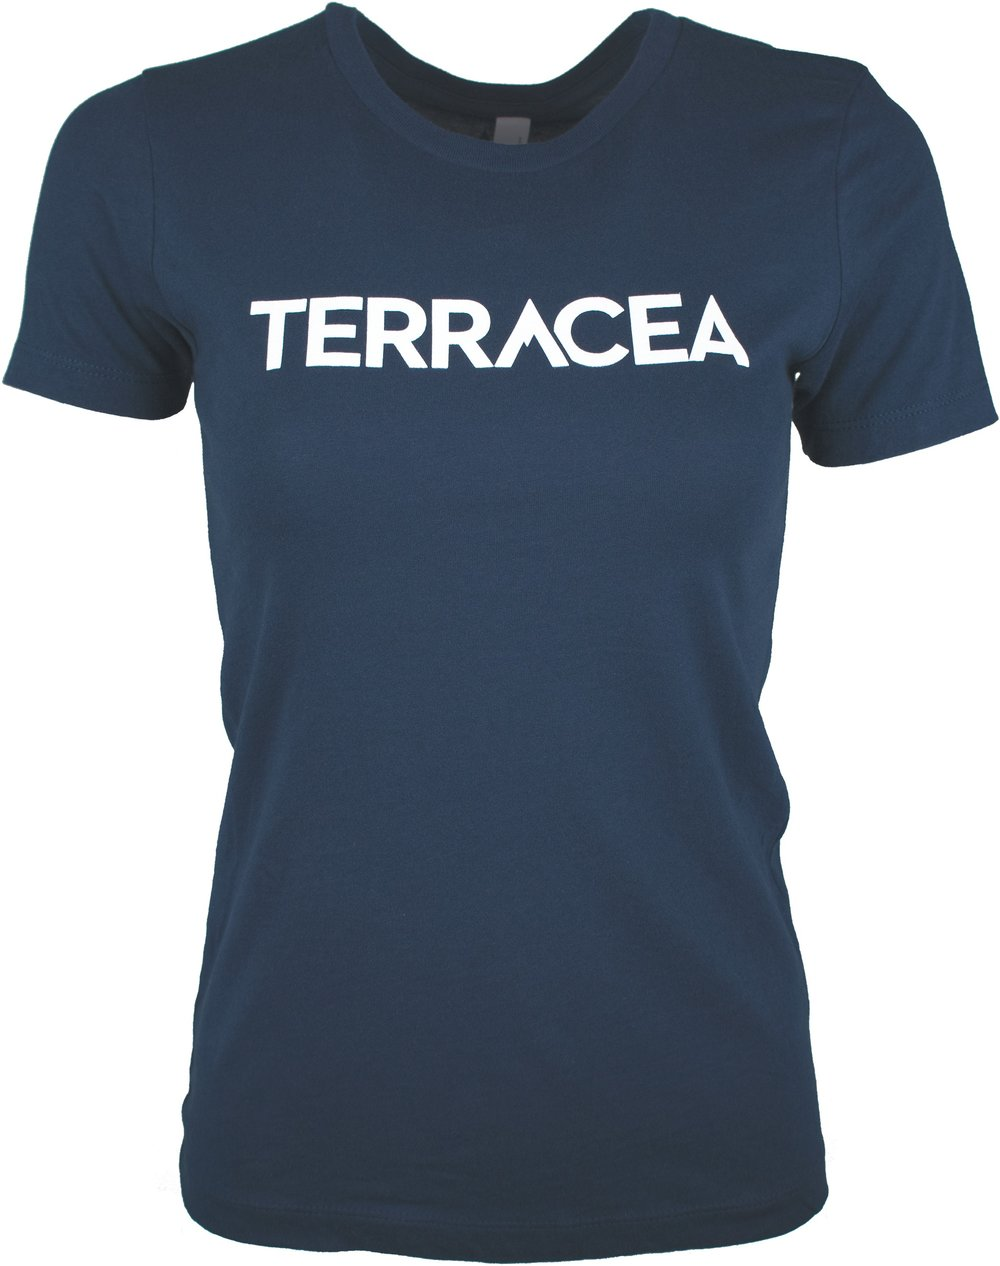 CLASSIC (WOMEN'S) TERRACEA T-SHIRT by Terracea - Waterproof, Windproof, Weatherproof Technical Outerwear